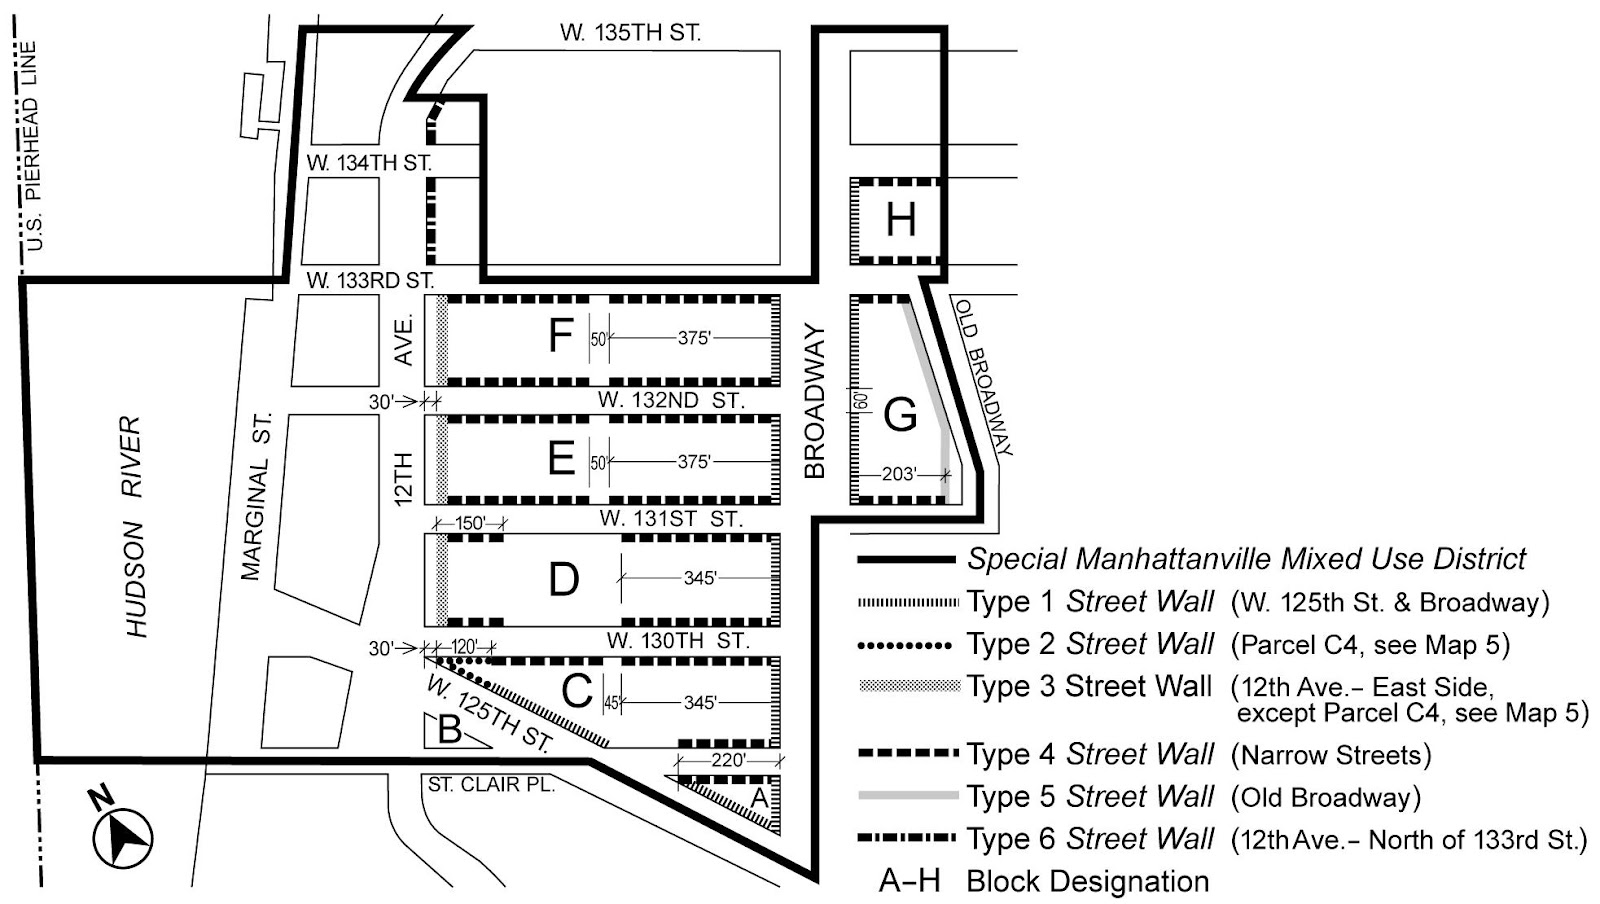 Zoning Resolutions Chapter 4: Special Manhattanville Mixed Use District Appendix A.3